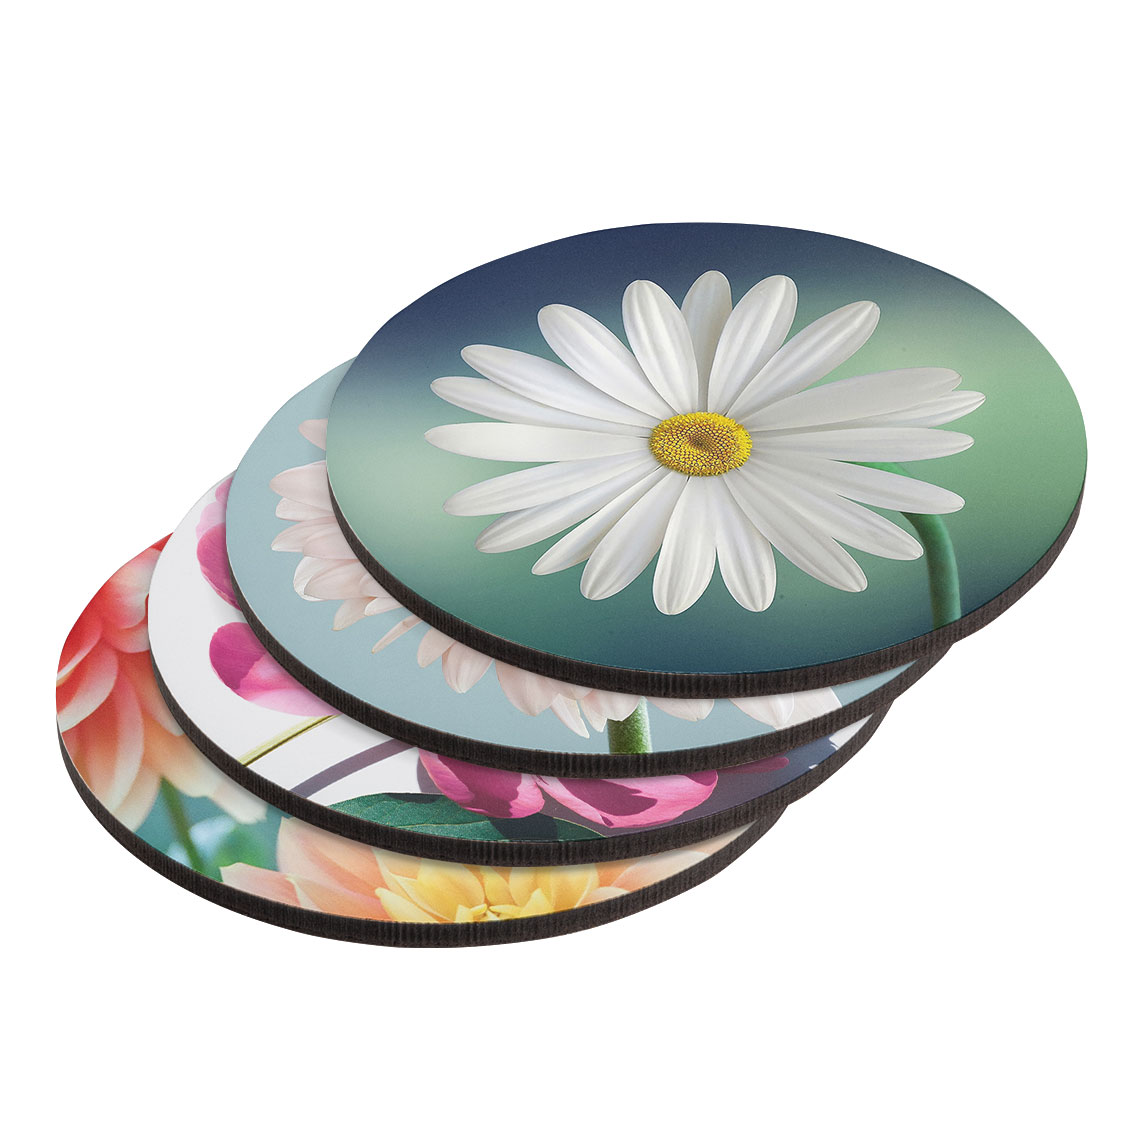 Round Coasters - Set of 4 (different images)